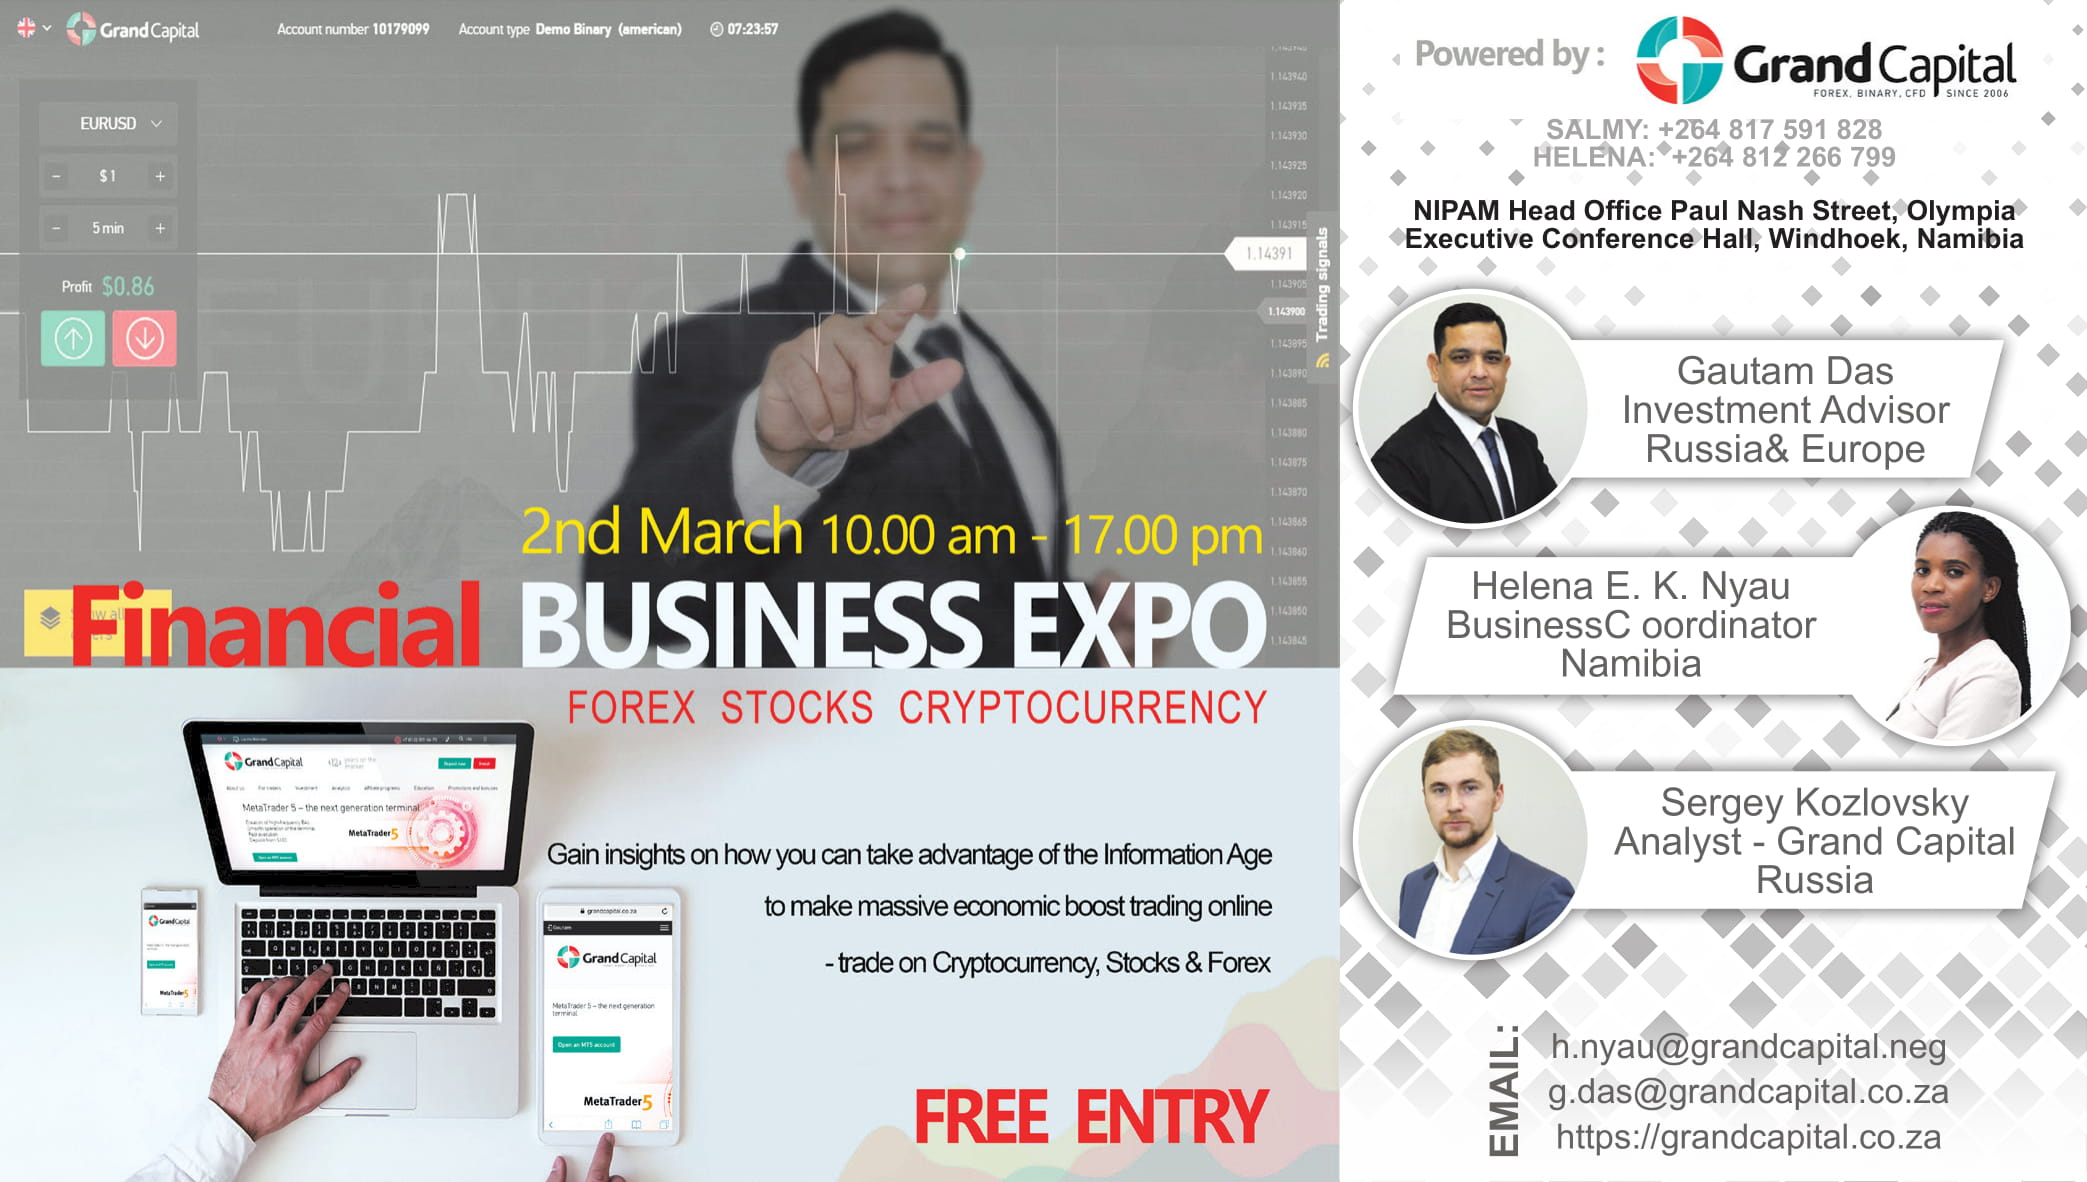 Financial Business Expo